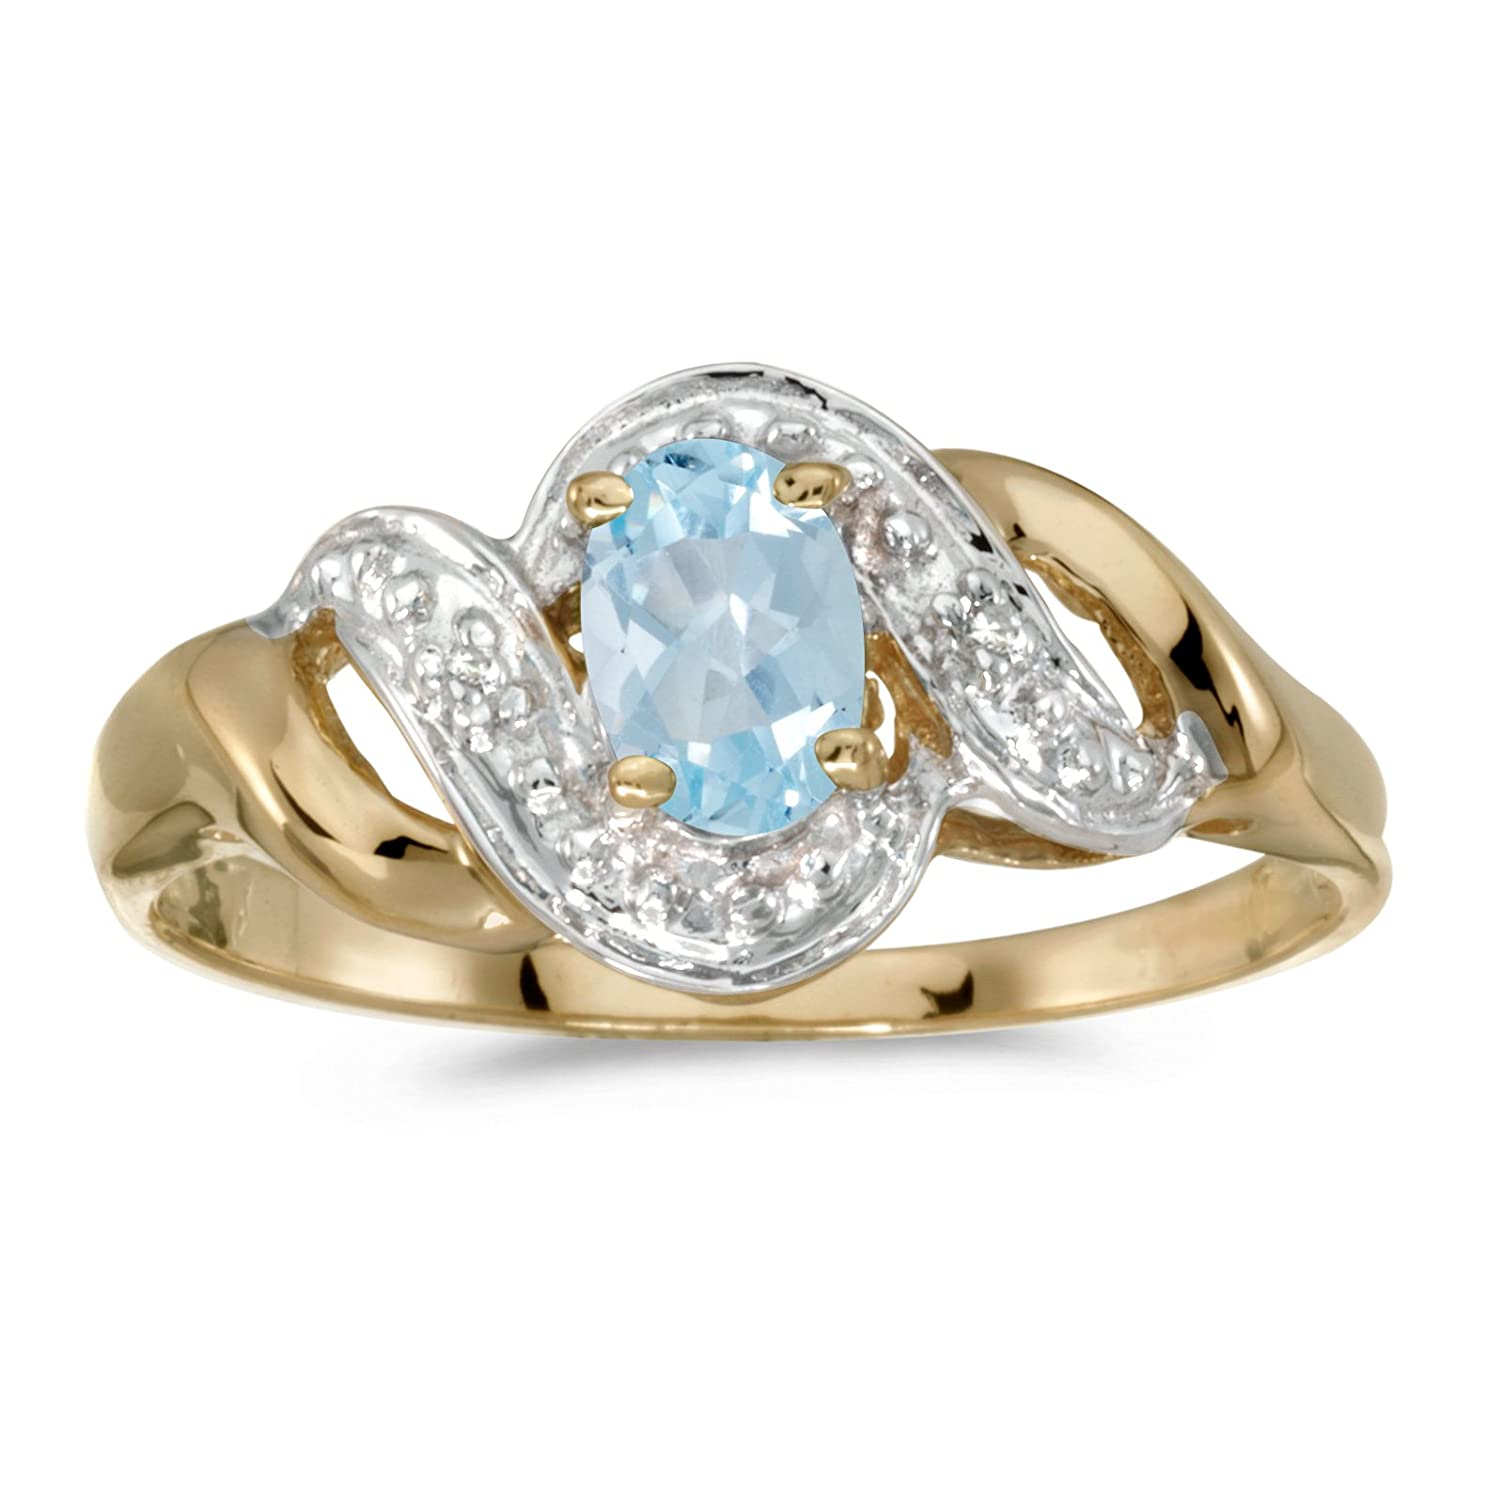 Jewels By Lux 14k Yellow Gold Genuine Birthstone Solitaire Oval Gemstone And Diamond Swirl Wedding Engagement Ring